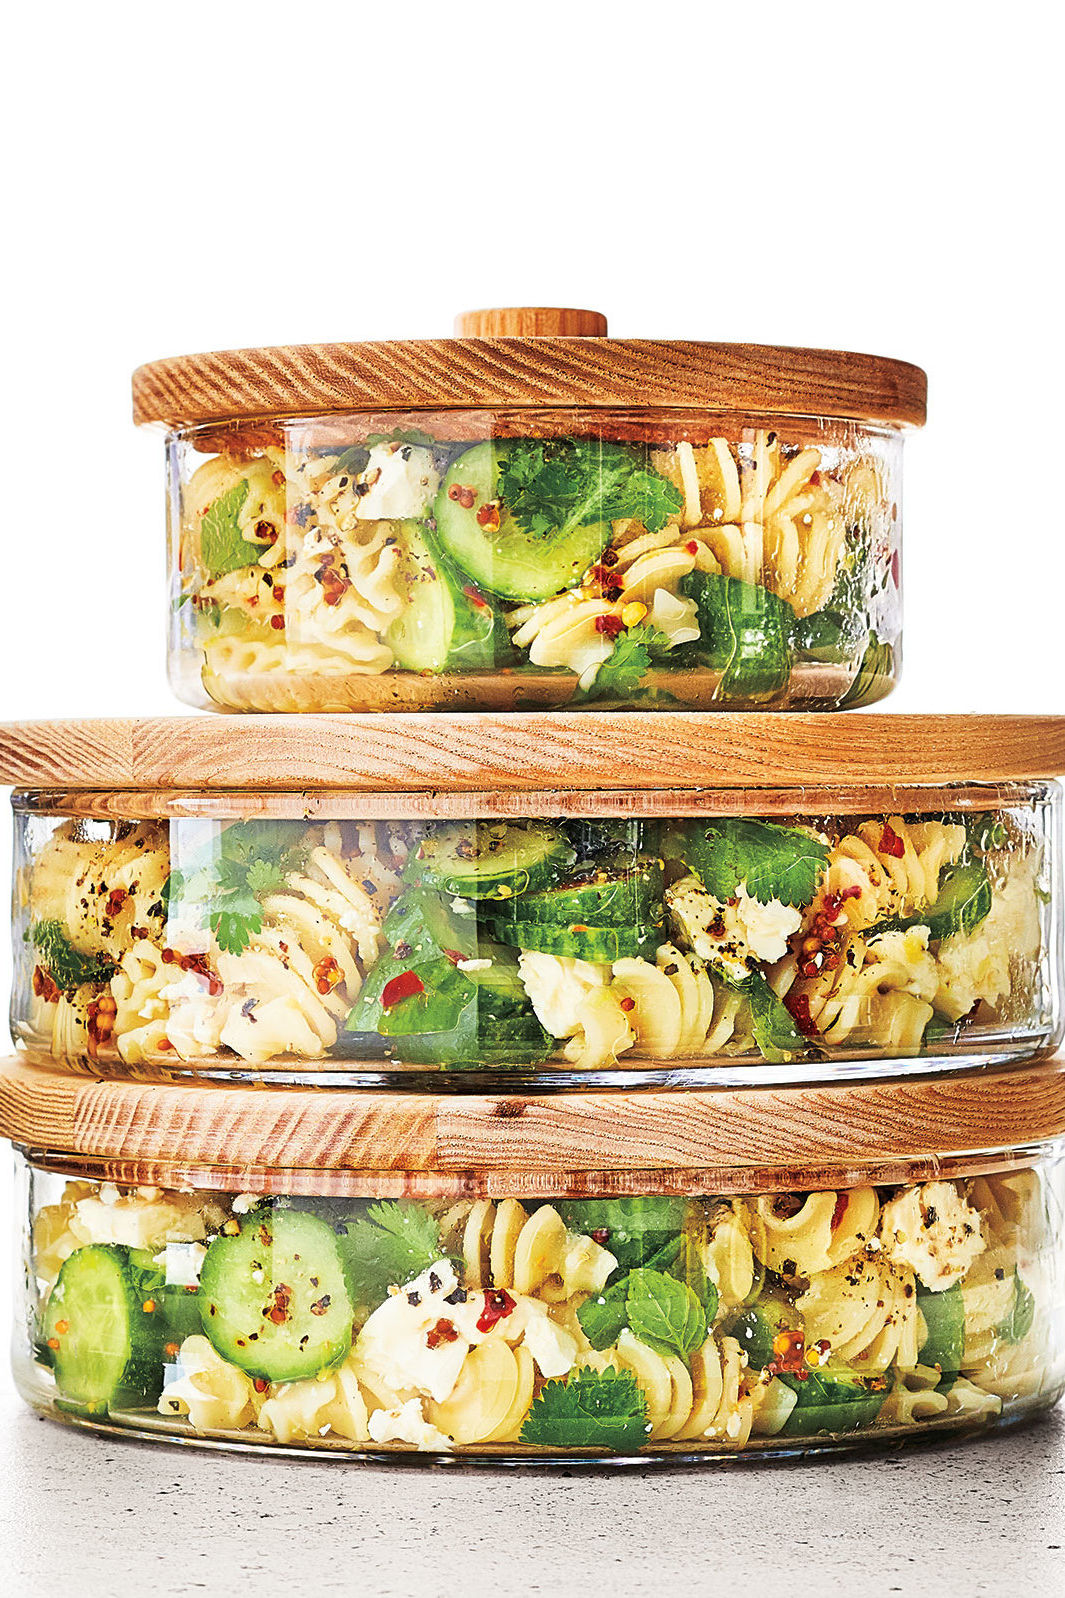 ThisPasta Salad Recipe Is a Hit At Every Summer Cookout I Bring It To